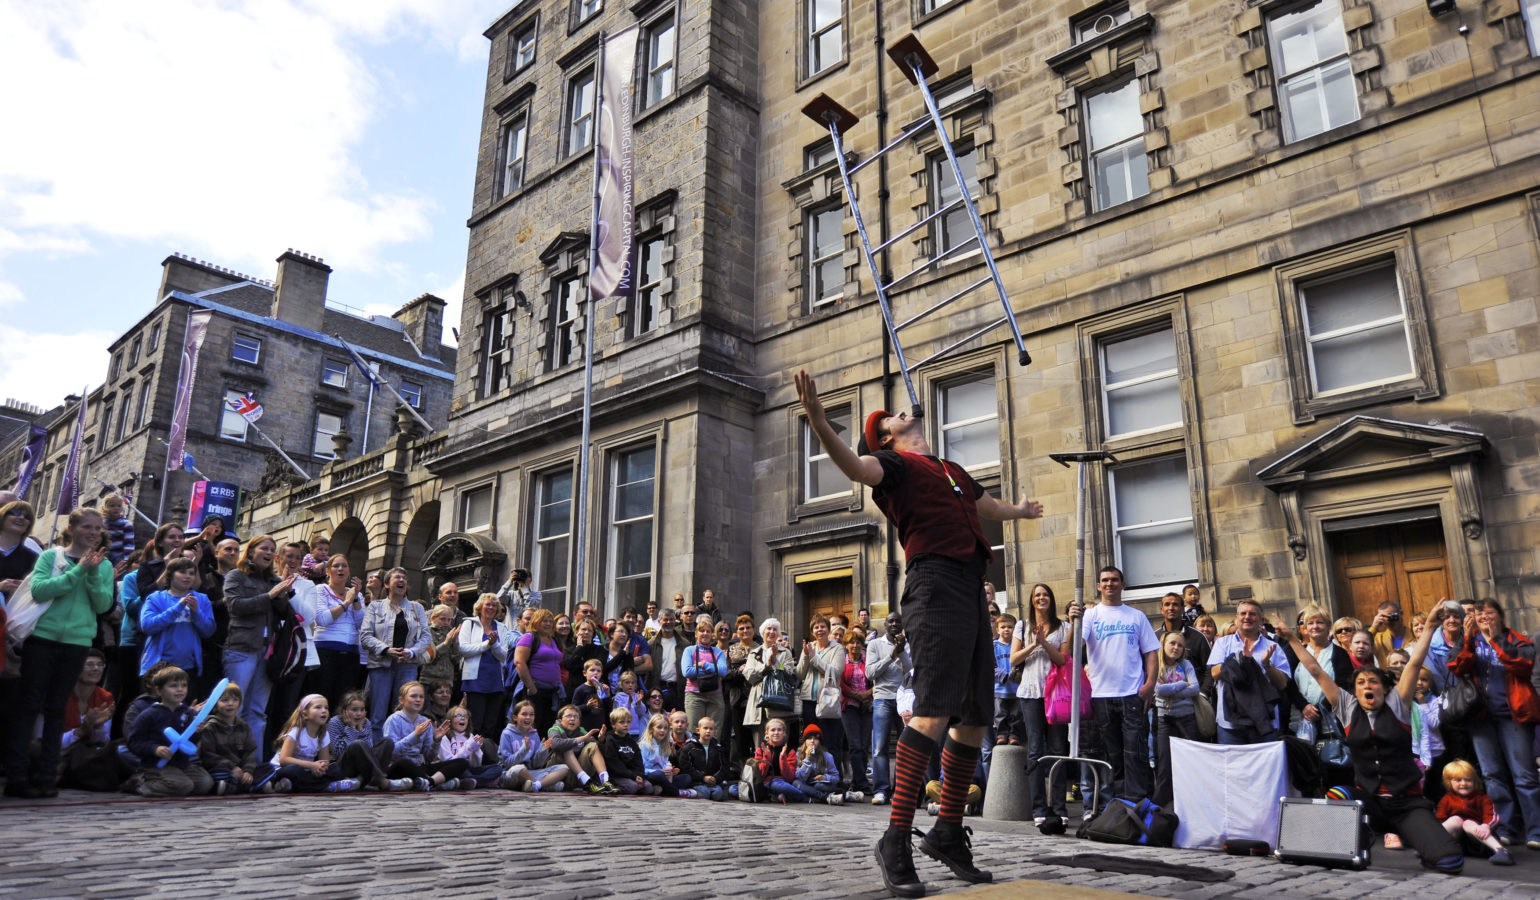 Edinburgh Fringe Festival: 9 things you HAVE to do at the Fringe